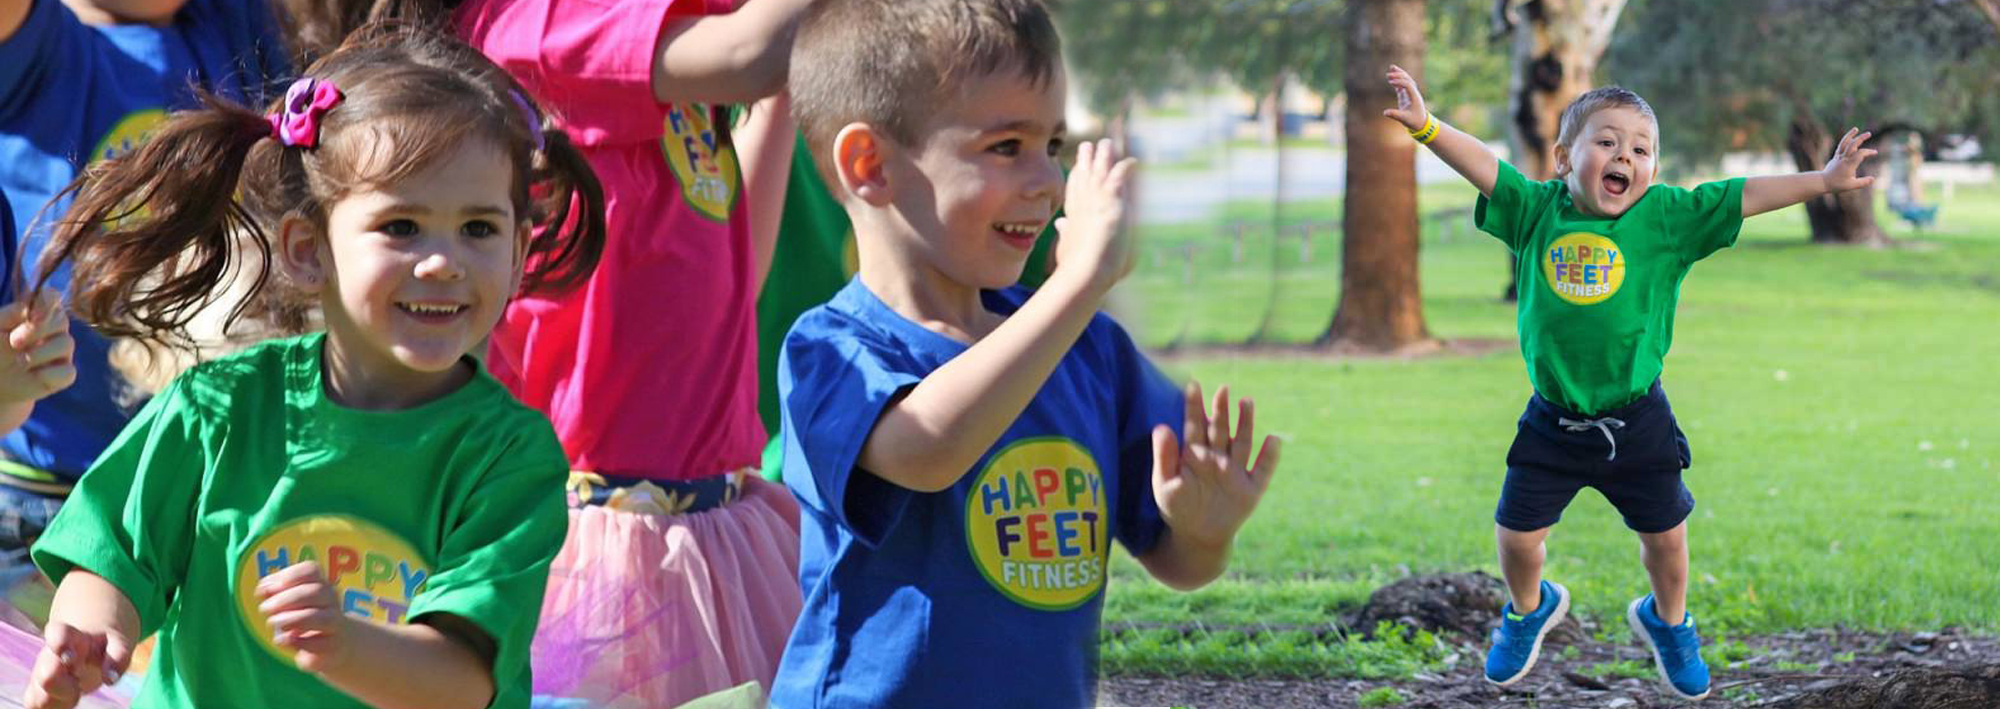 Play-based Learning & Children Fitness | Happy Feet Fitness